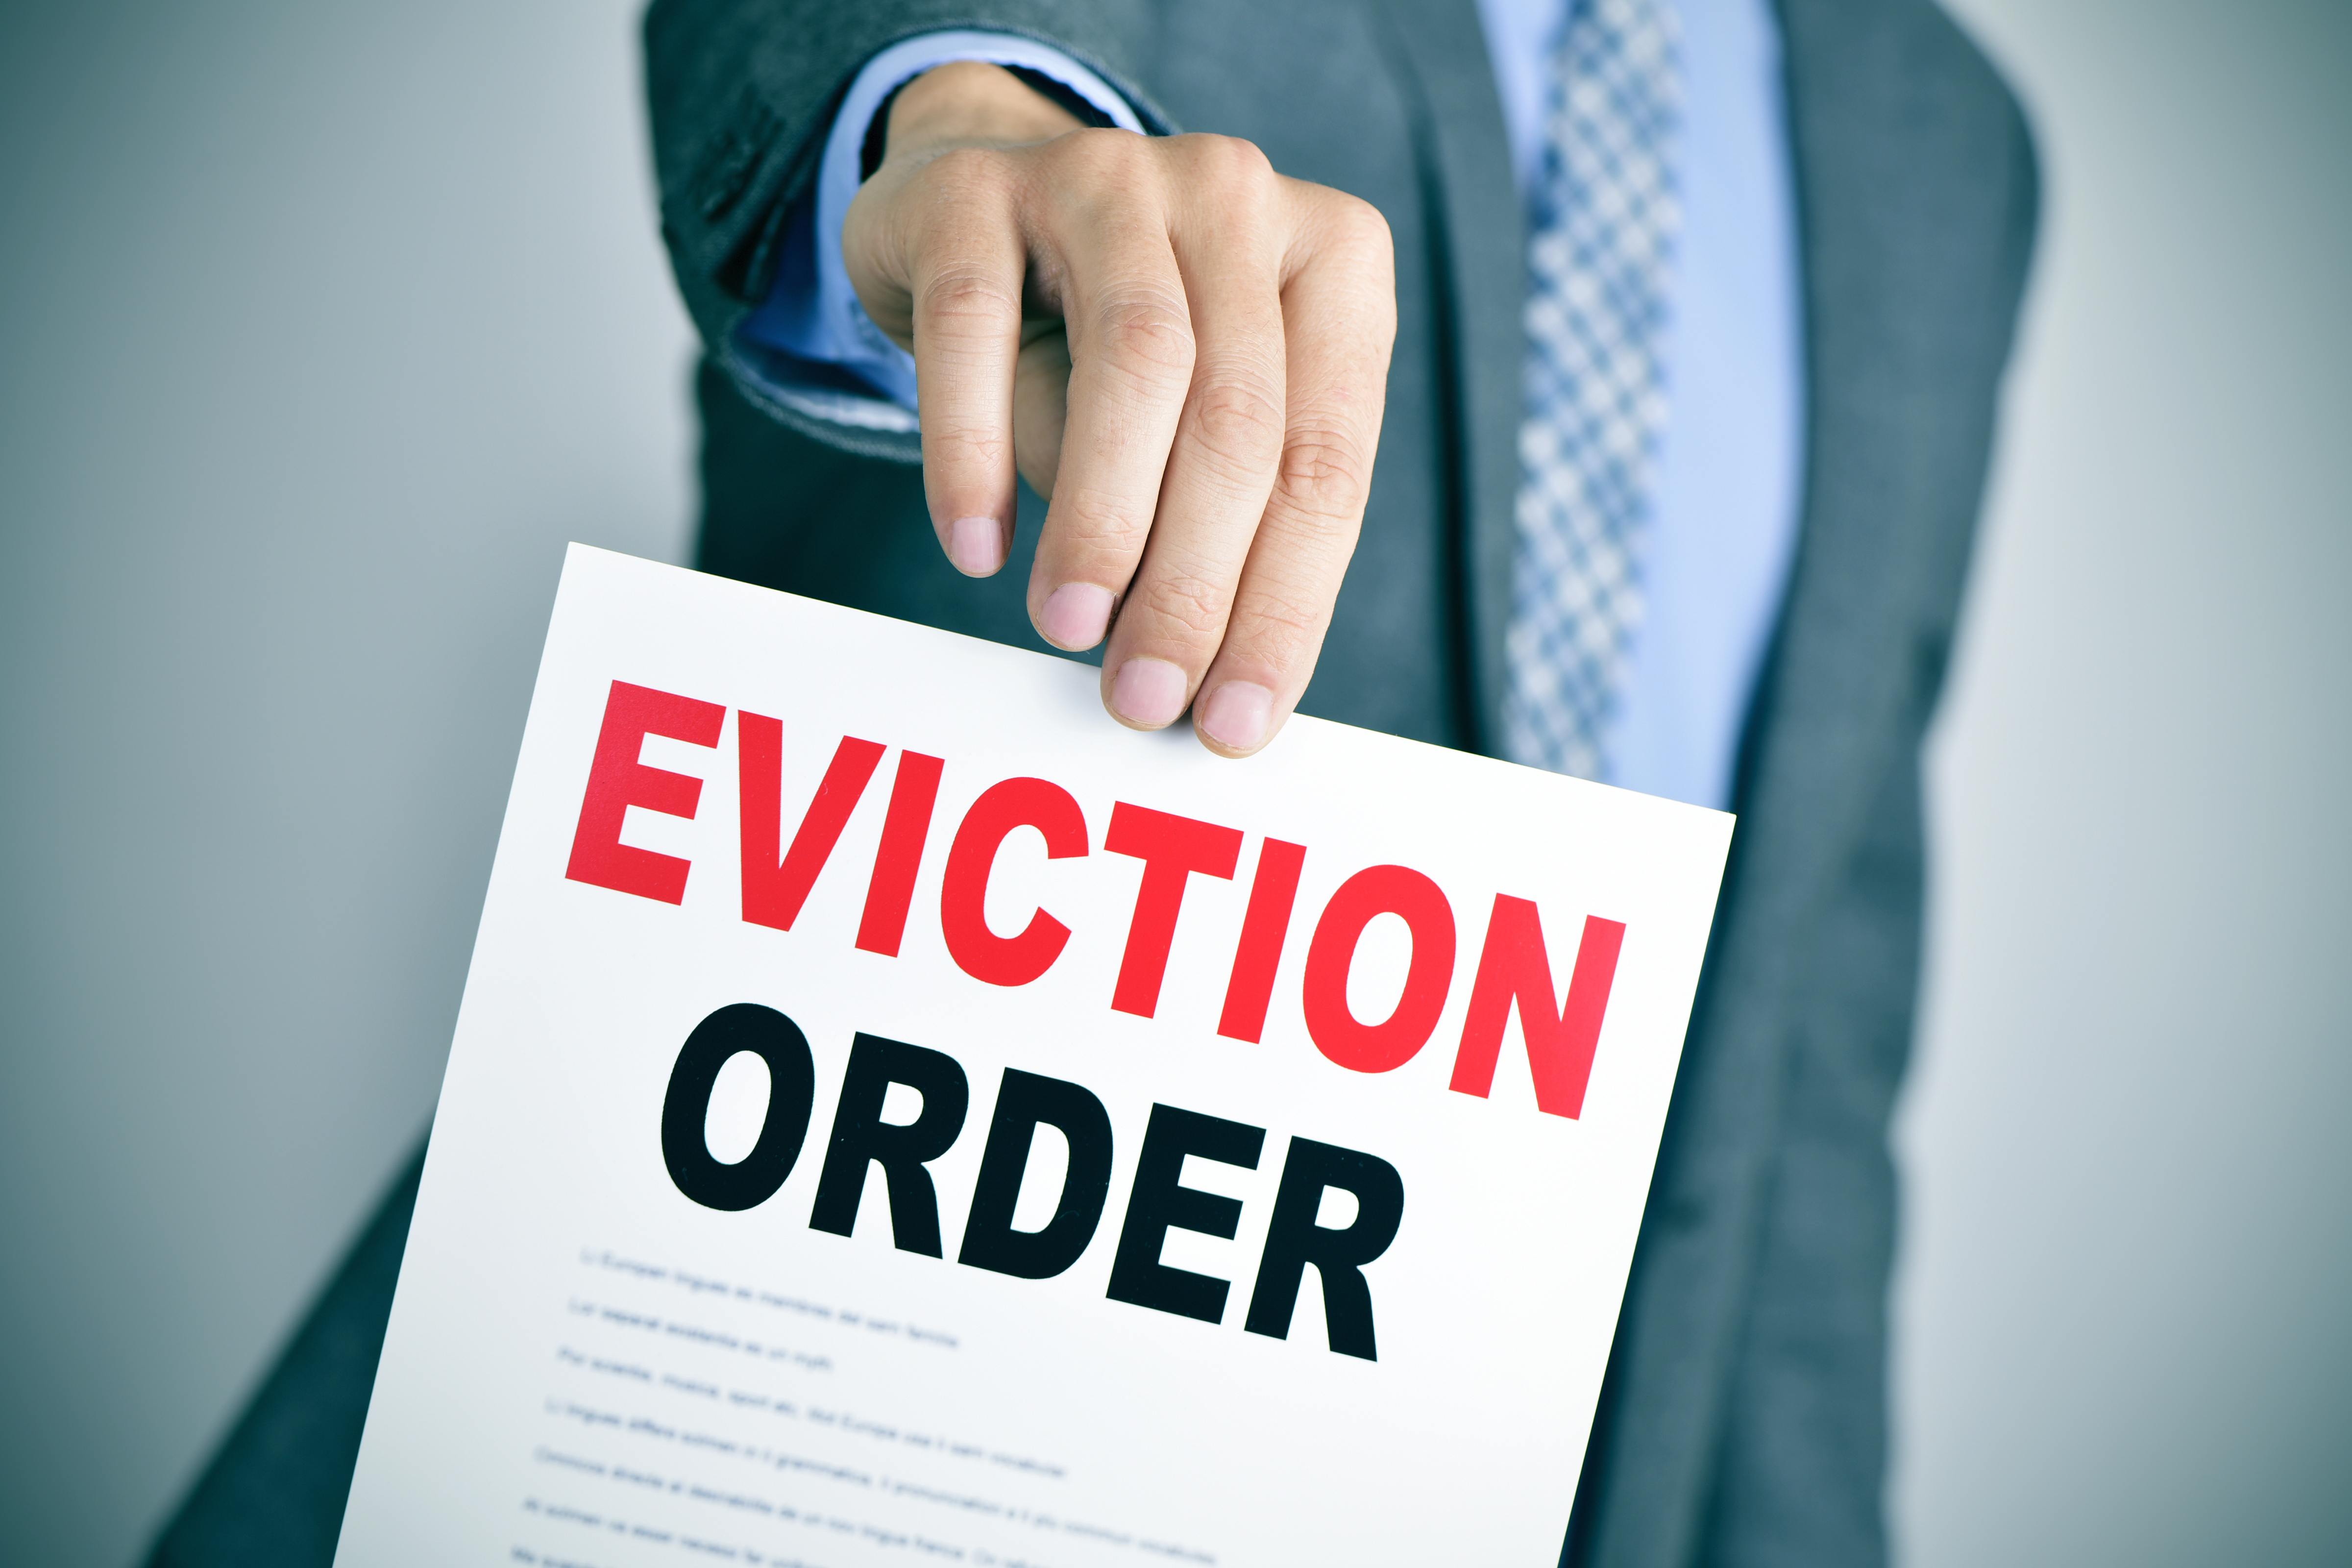 How to Sue for an Illegal Eviction